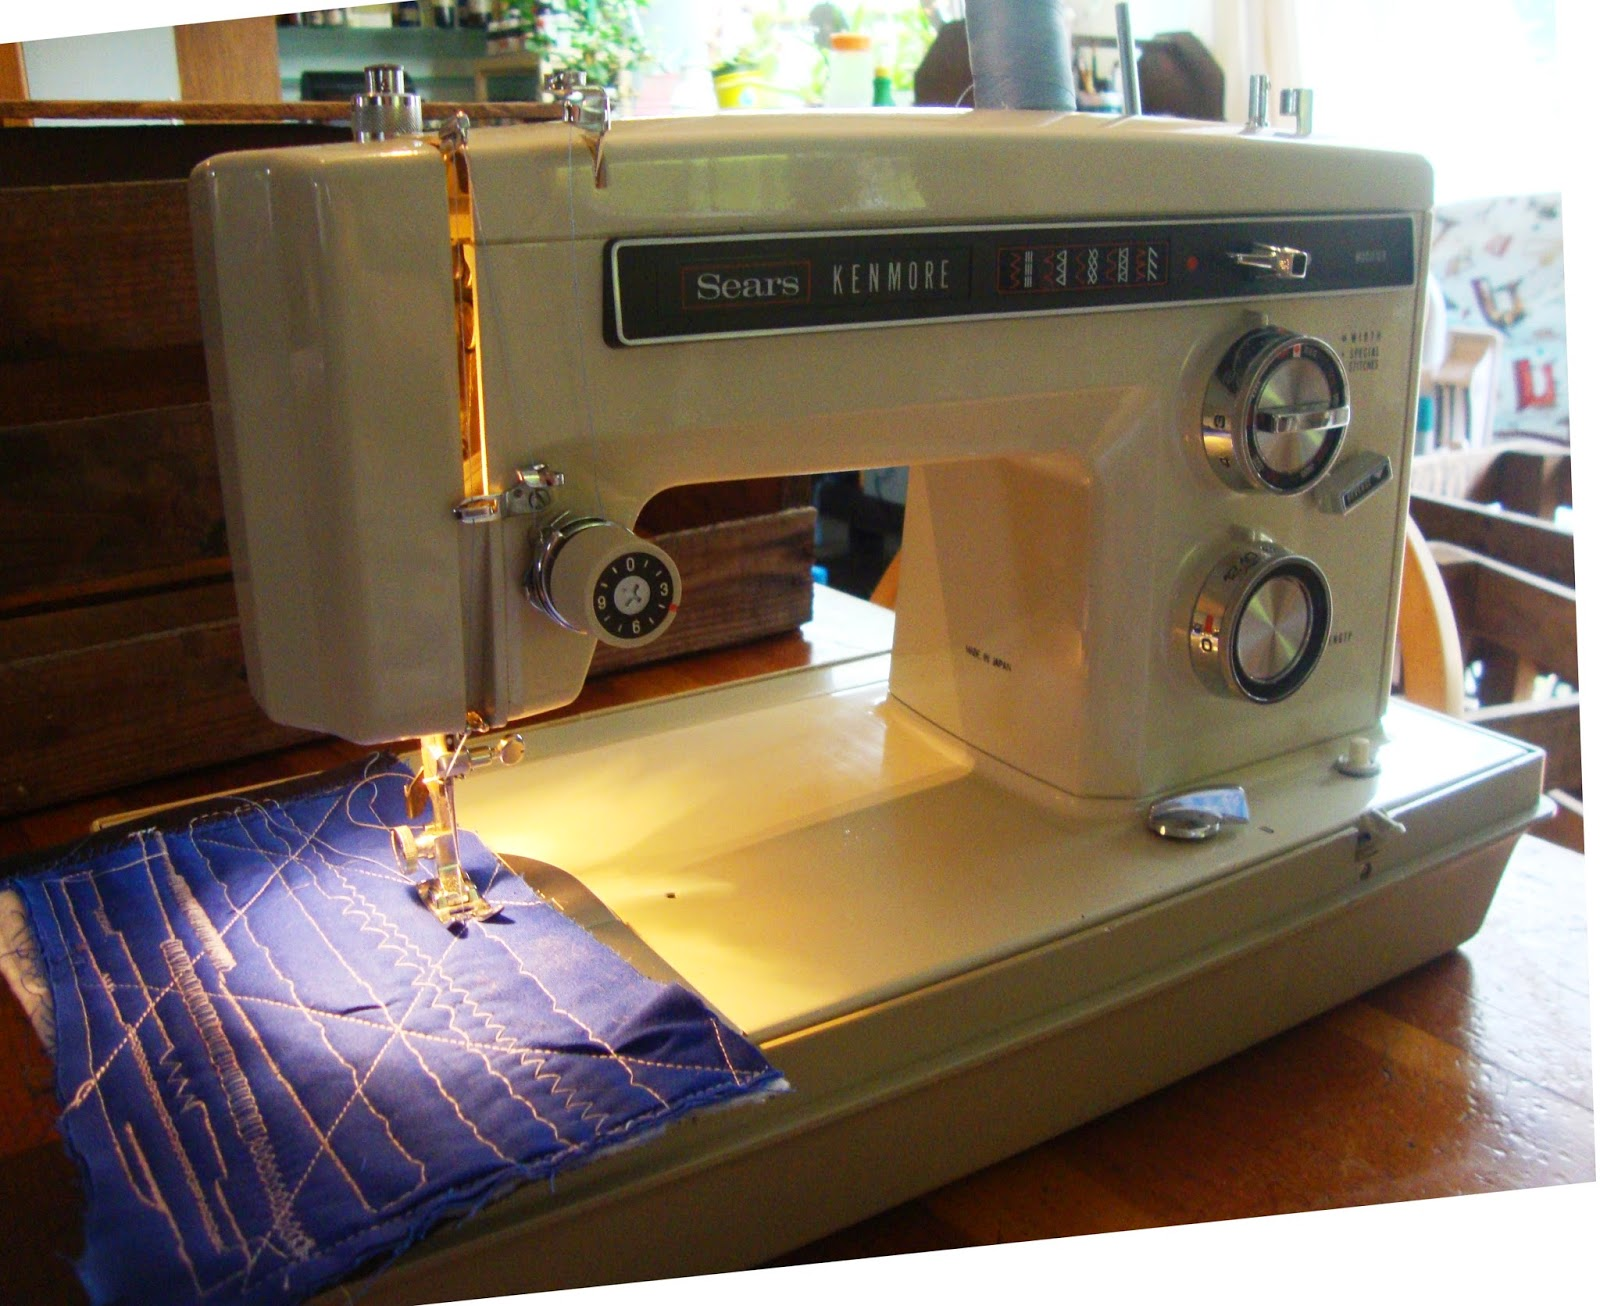 Sears coupon sewing machine